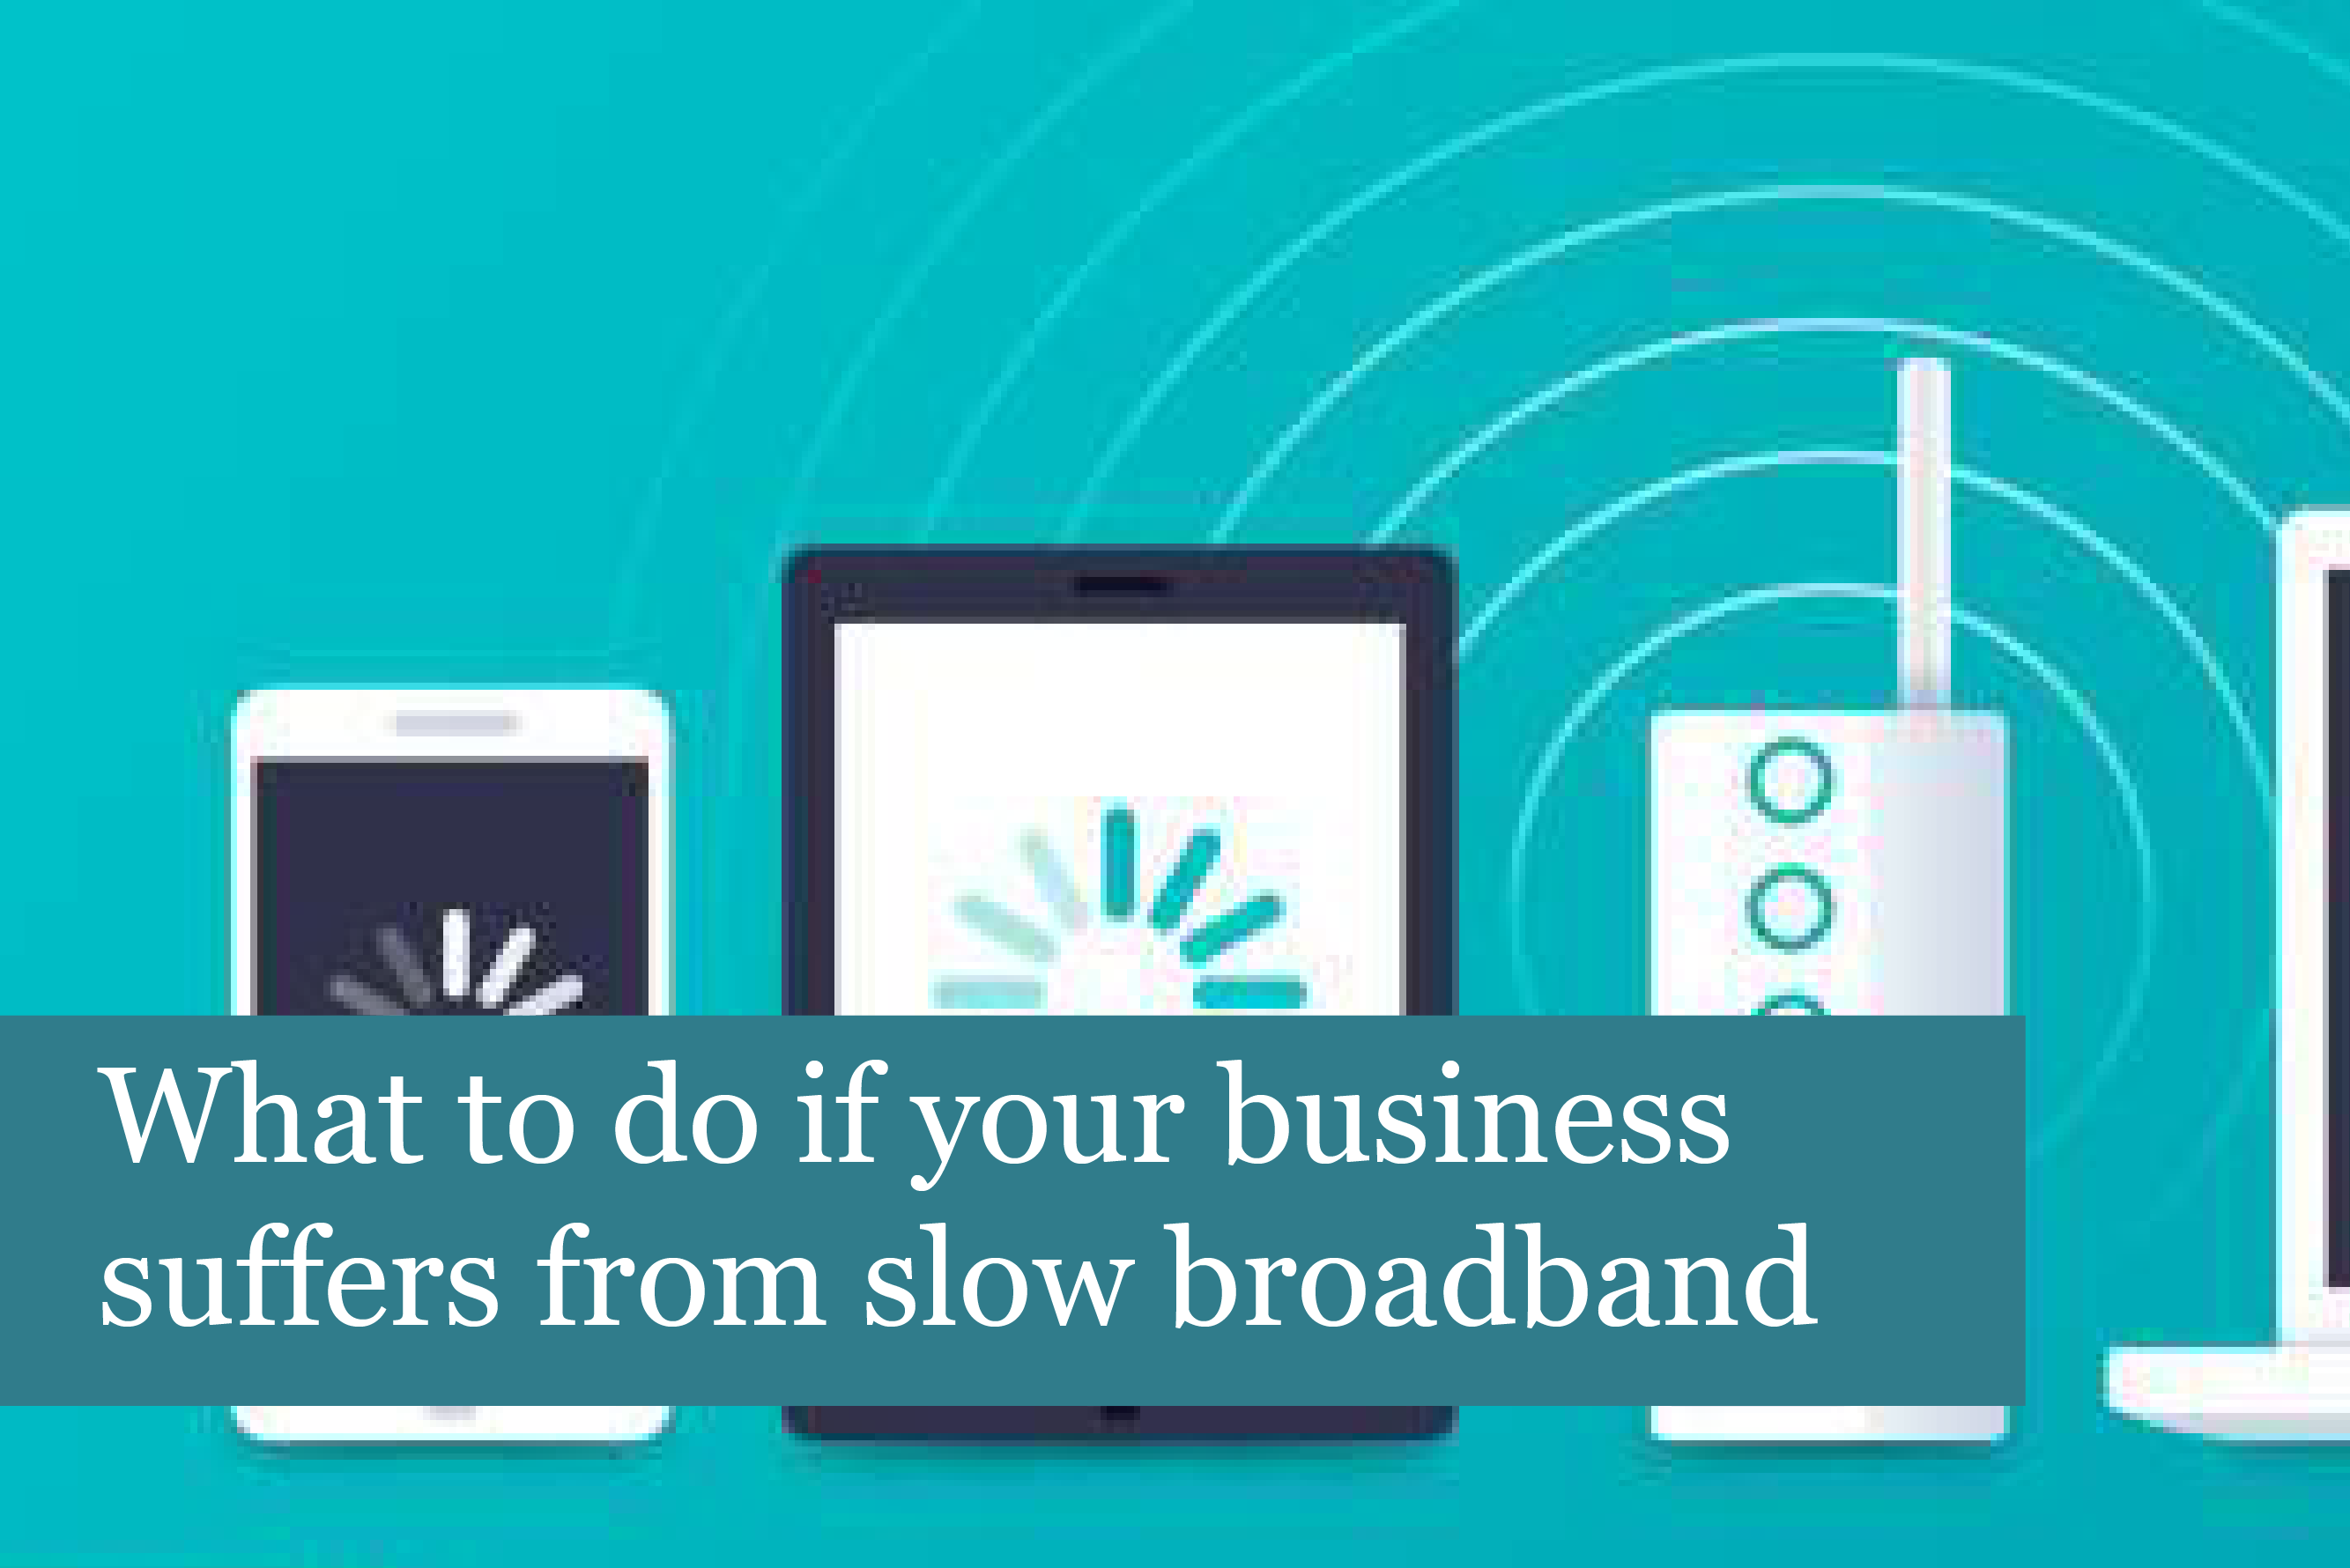 What to do if your business suffers from slow broadband